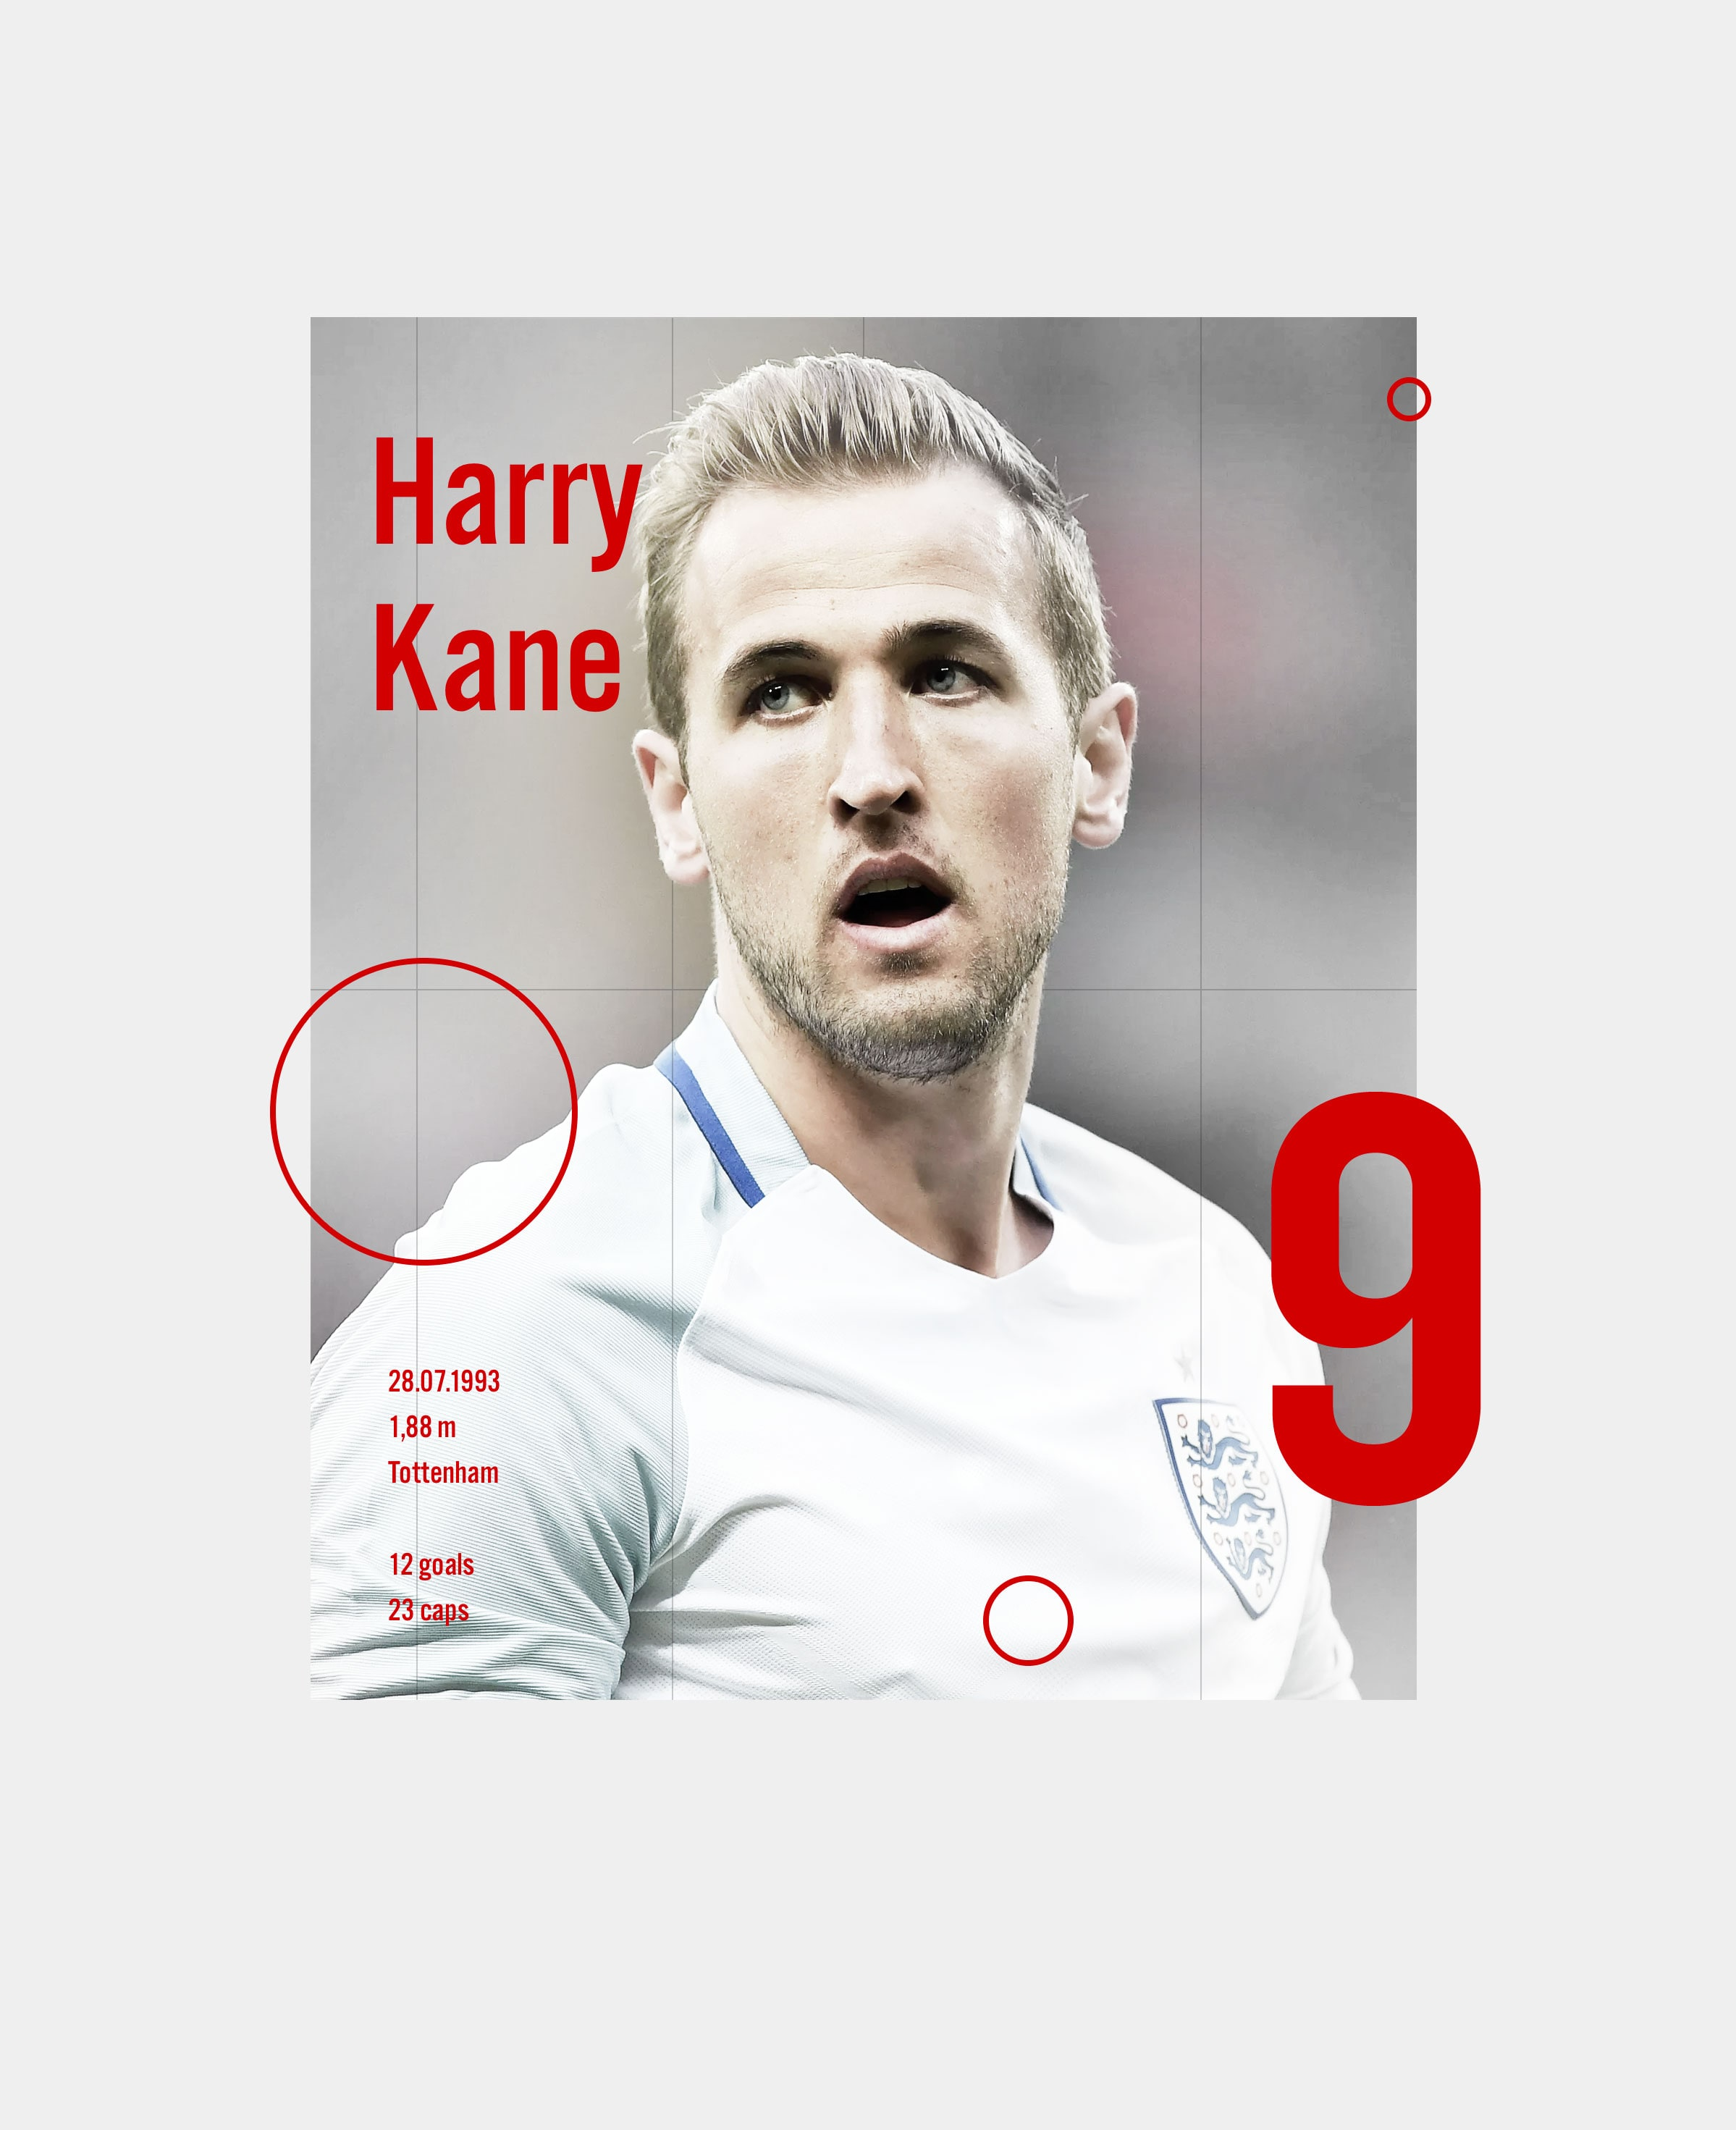 Carte Angleterre Tottenham.Qwant Sports Hololens Index